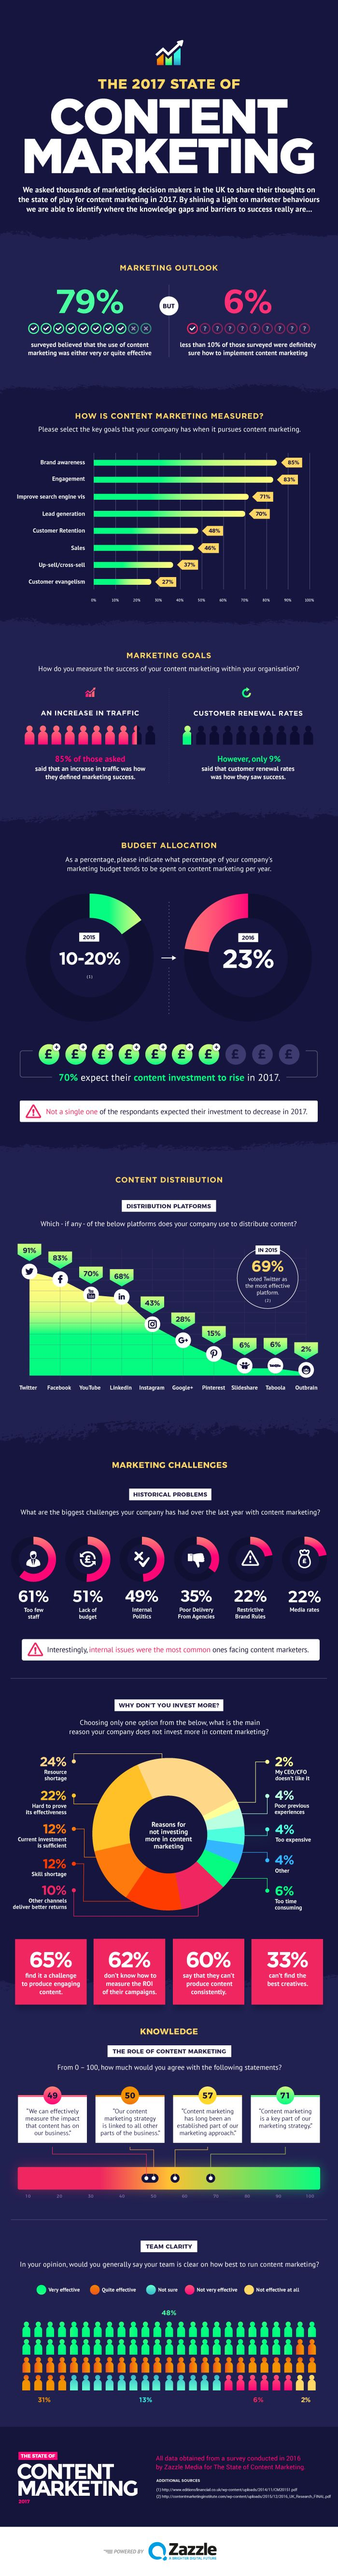 Content Marketing infographie 2017